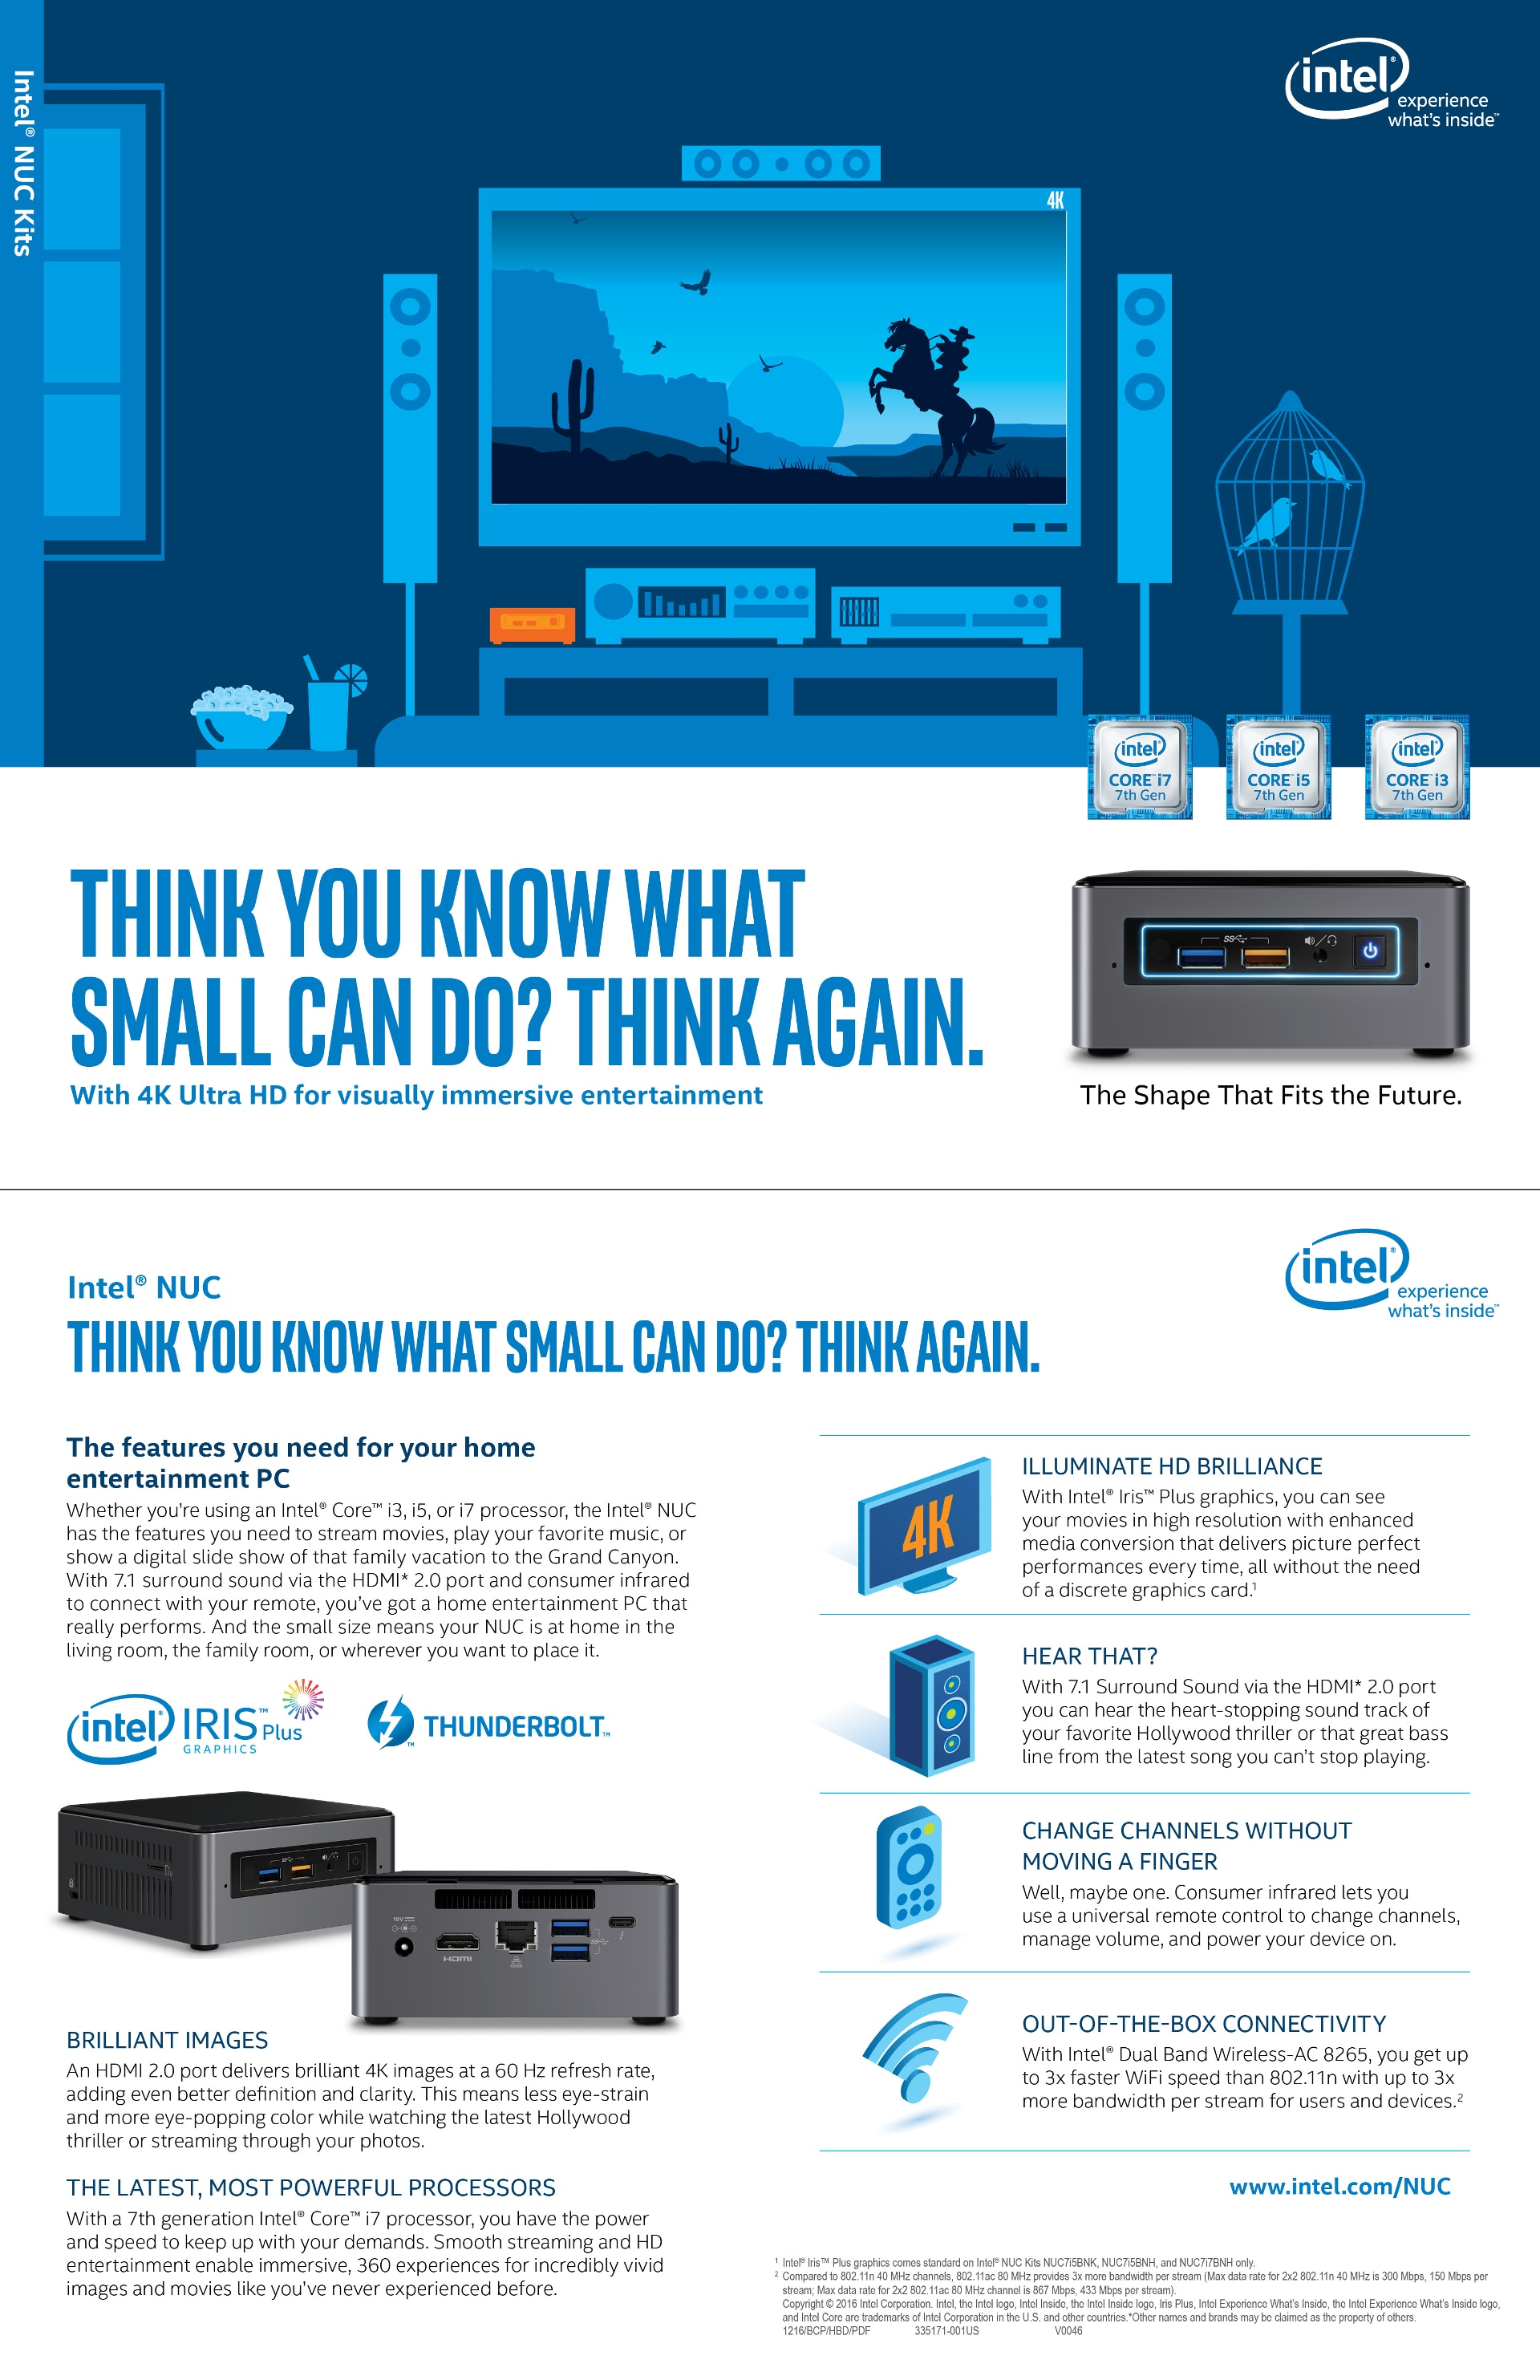 Discover Home Entertainment with Intel® NUC